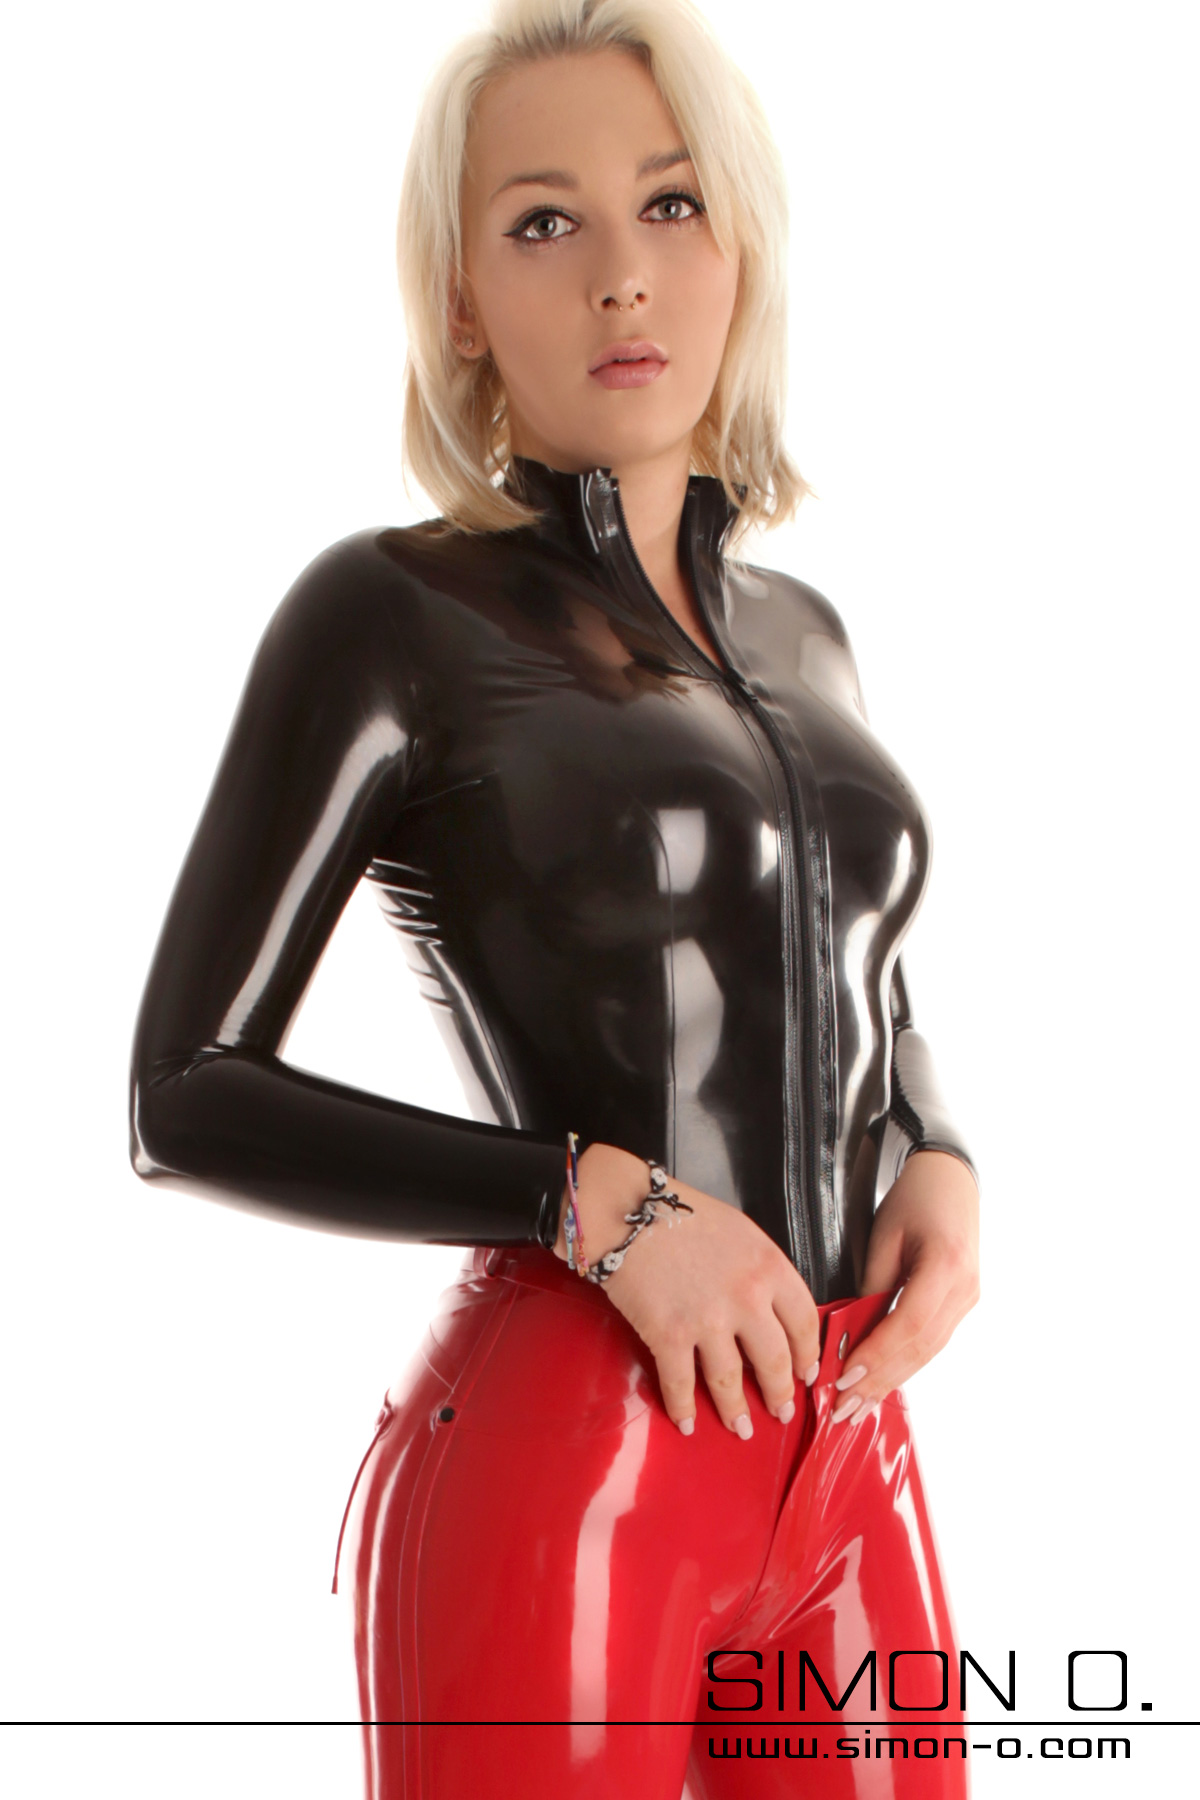 A blonde lady with a tight shine latex top in black with a divisible zipper front